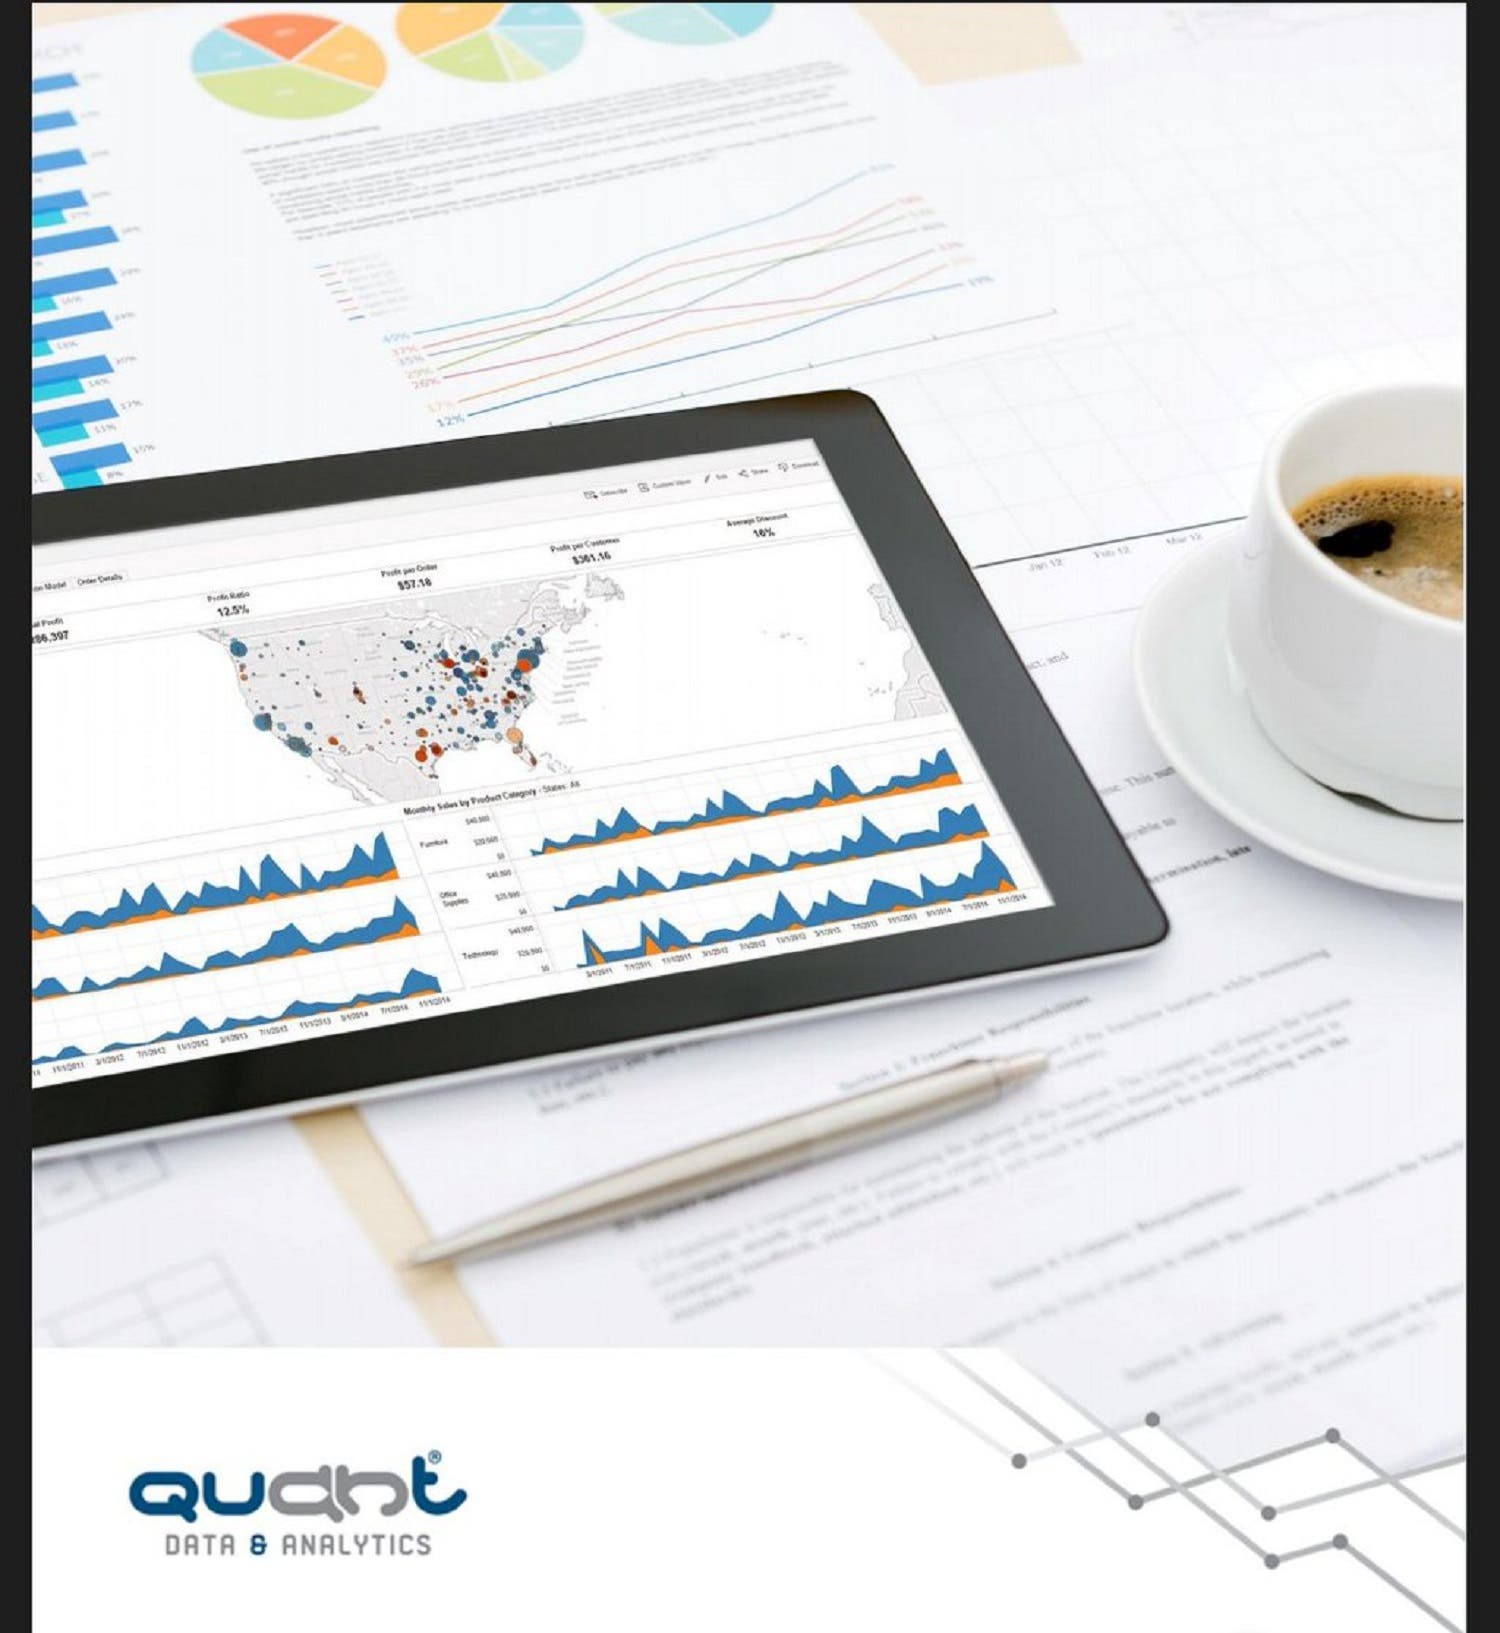 Quant officially launched as the first company in Saudi Arabia in the field of data sciences and actuaries together and mixing between the work of actuarial analysts and data engineers. (Twitter)